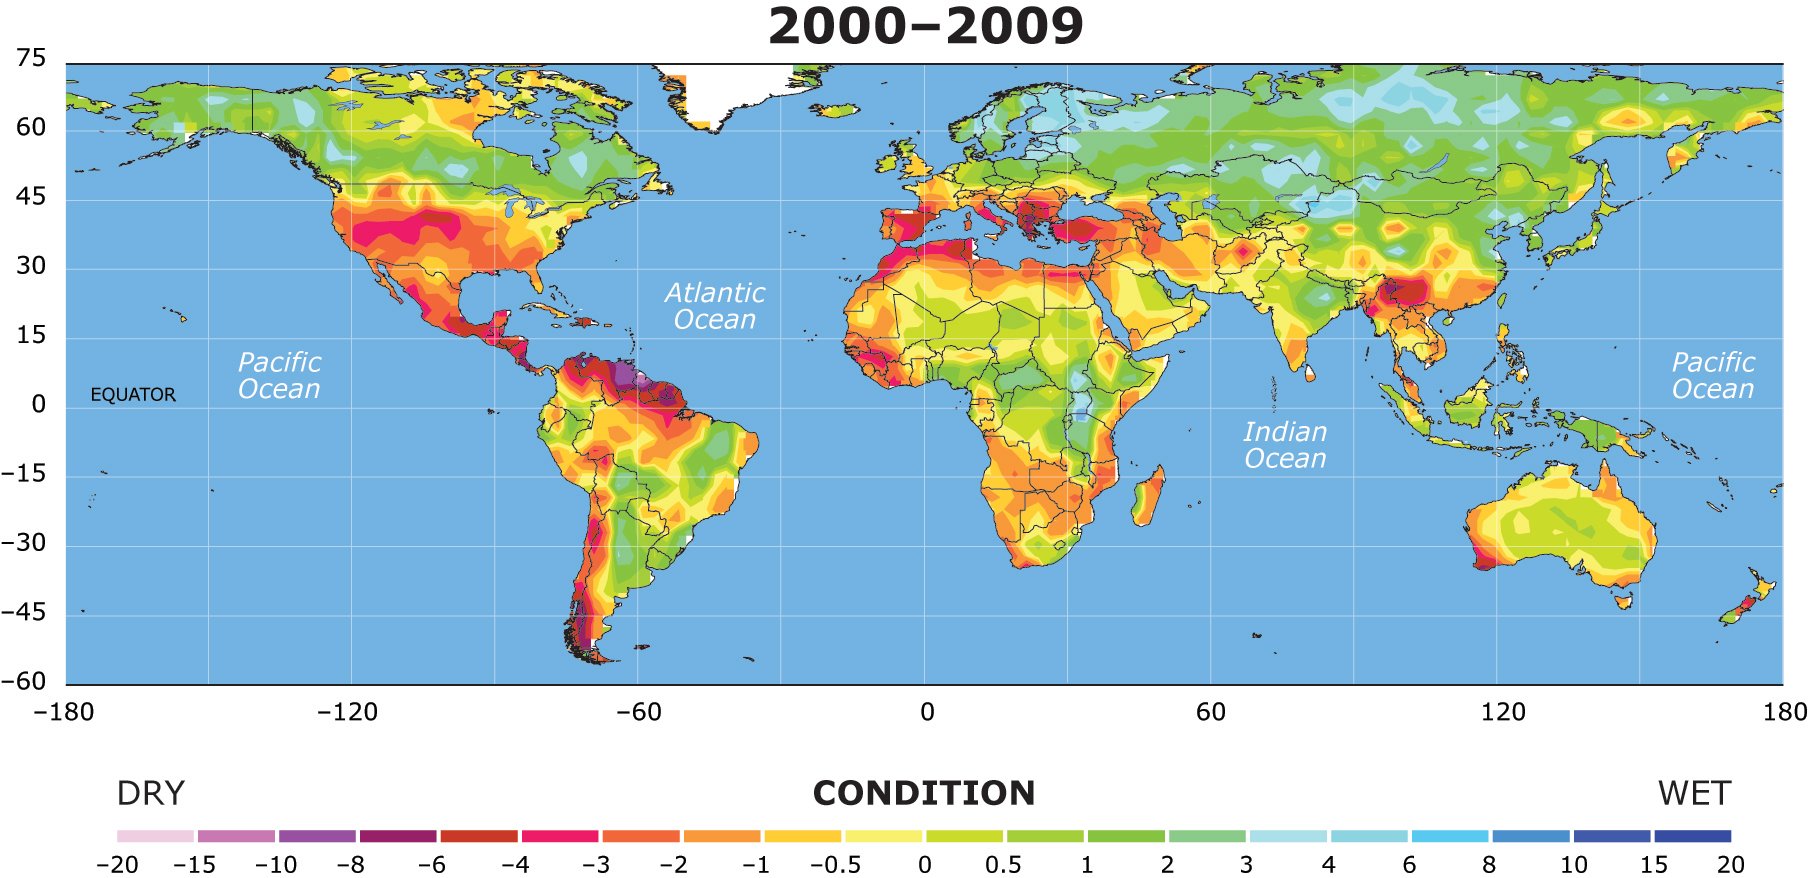 droughts from 2000 to 2099